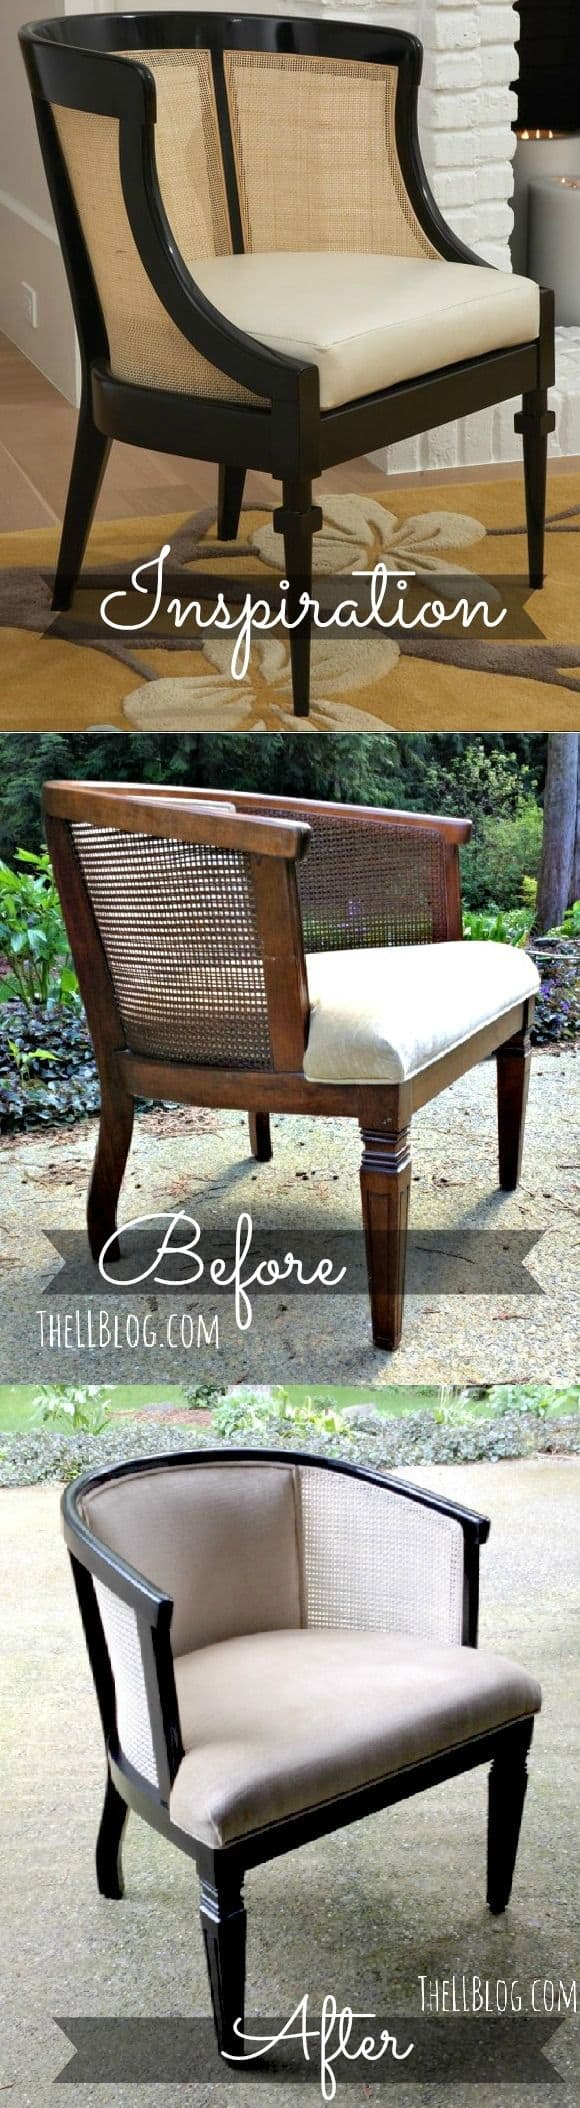 Before And After DIY Reupholstering Furniture Ideas (29)